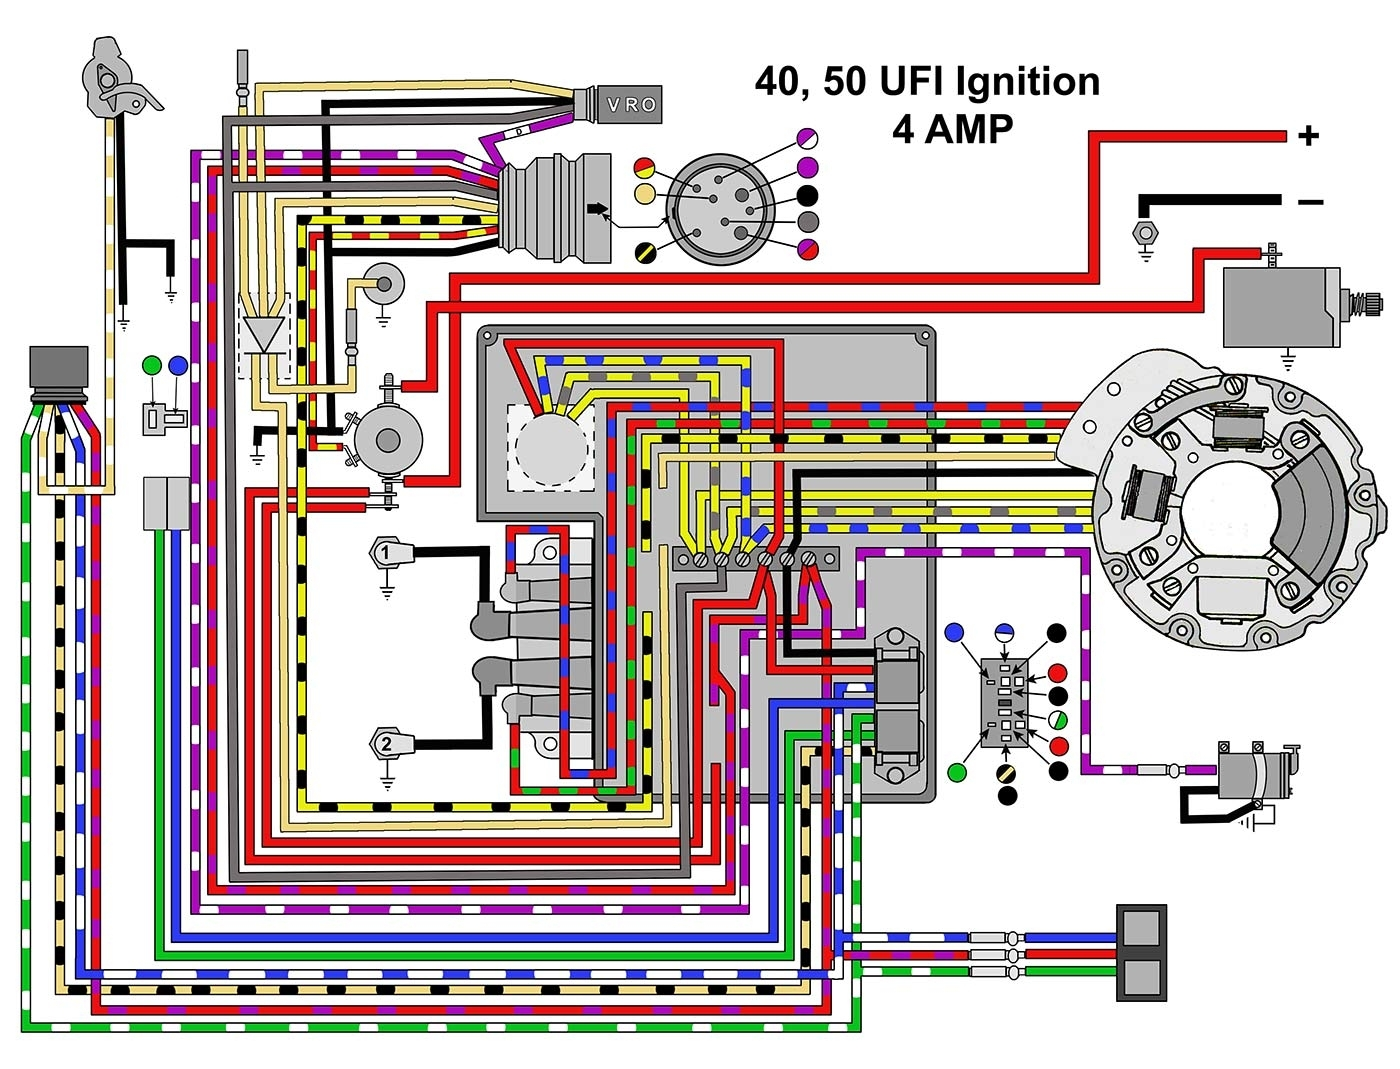 wiring diagrams enable technicians to parts of a shirt diagram 76 evinrude fuse box and